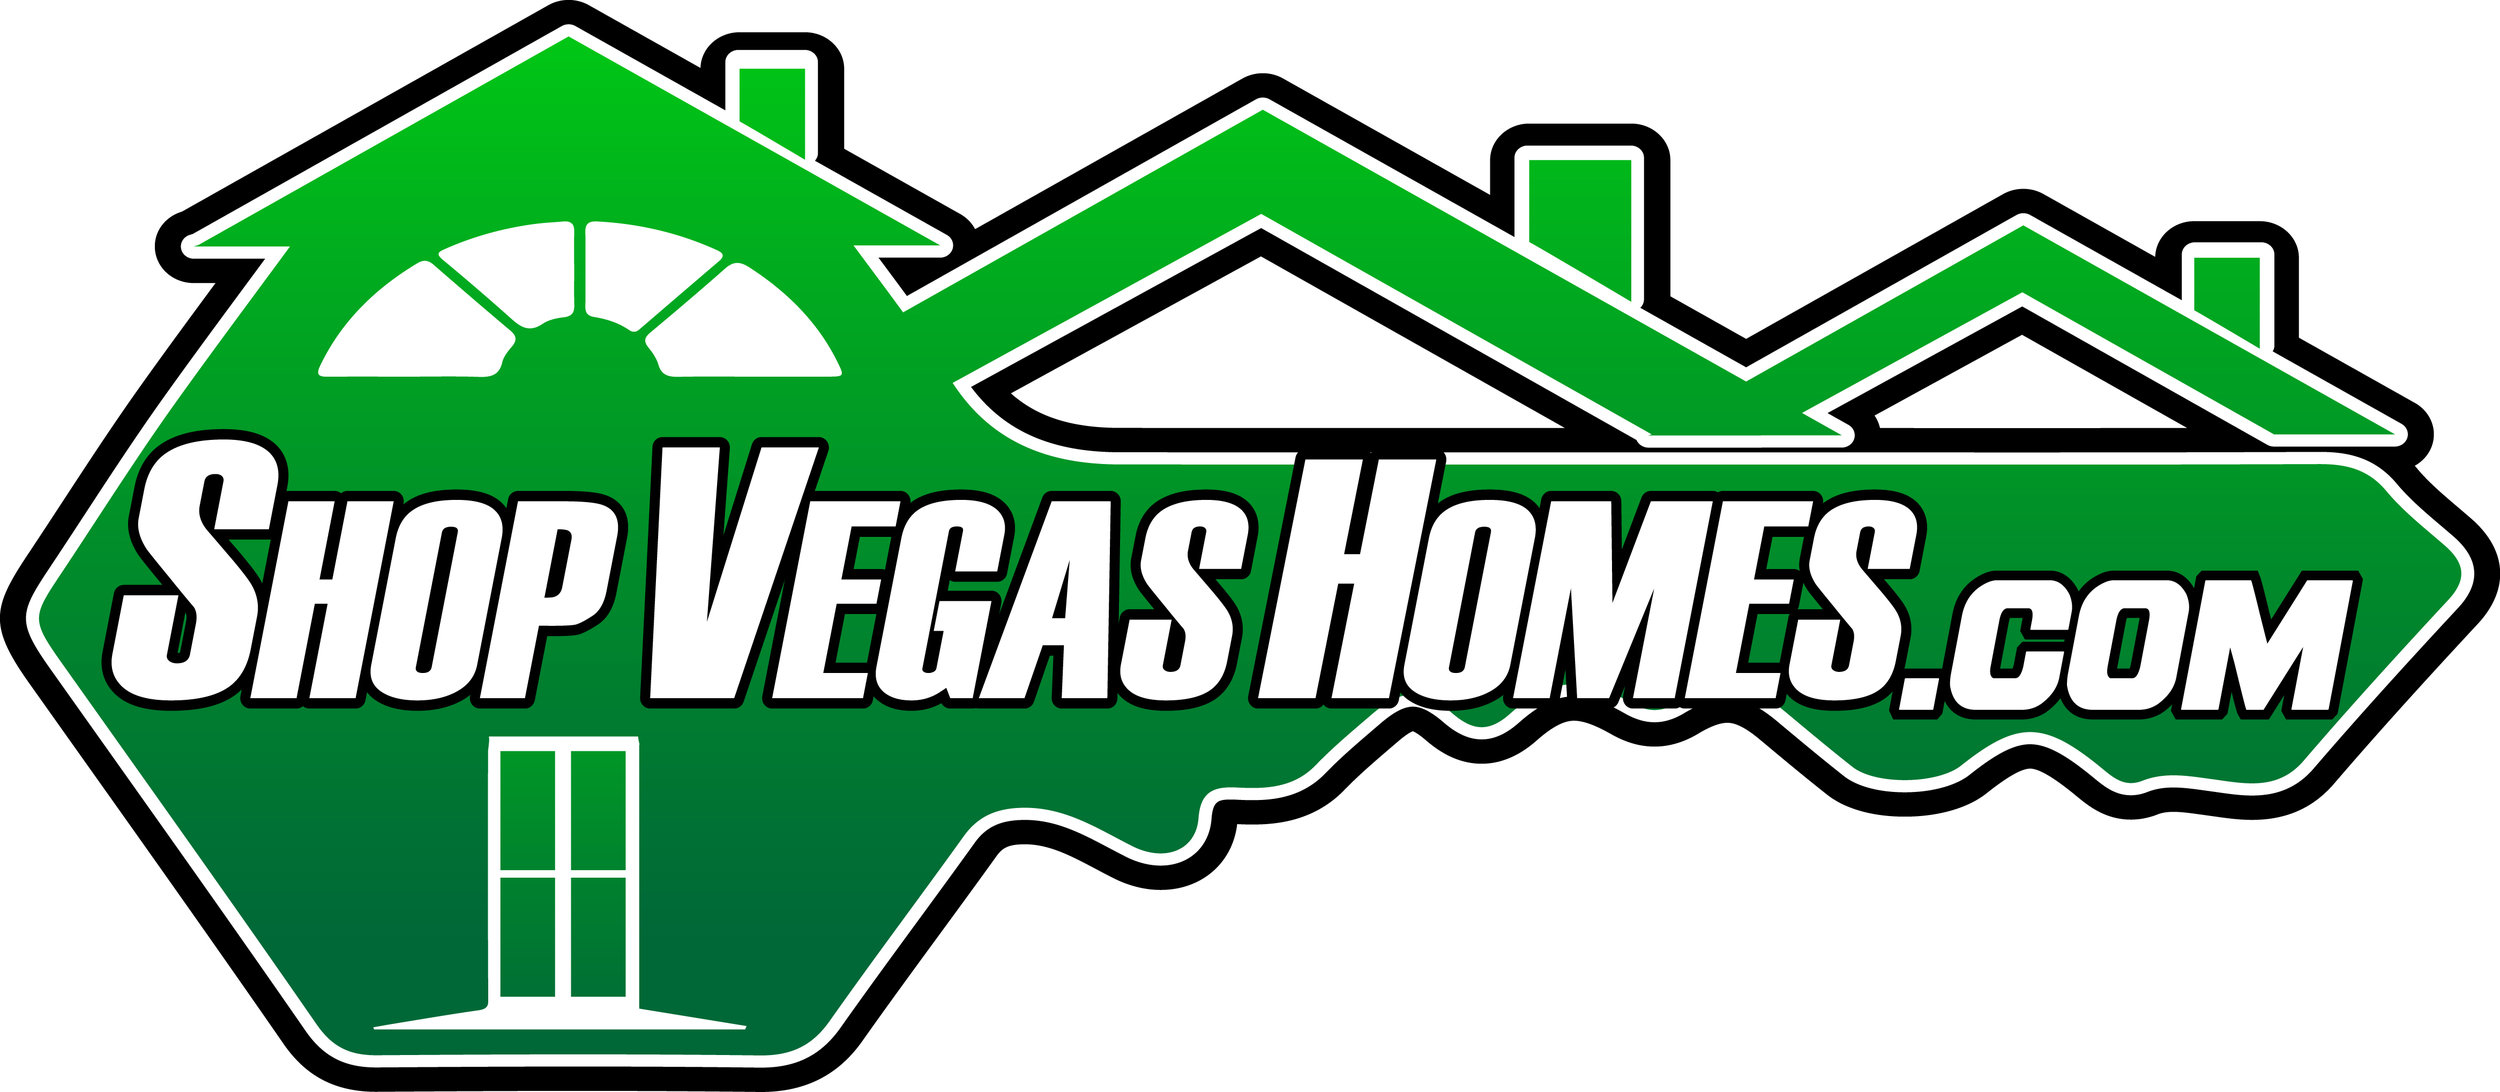 Shop Vegas Homes Logo.com-FINAL 2-01.jpg